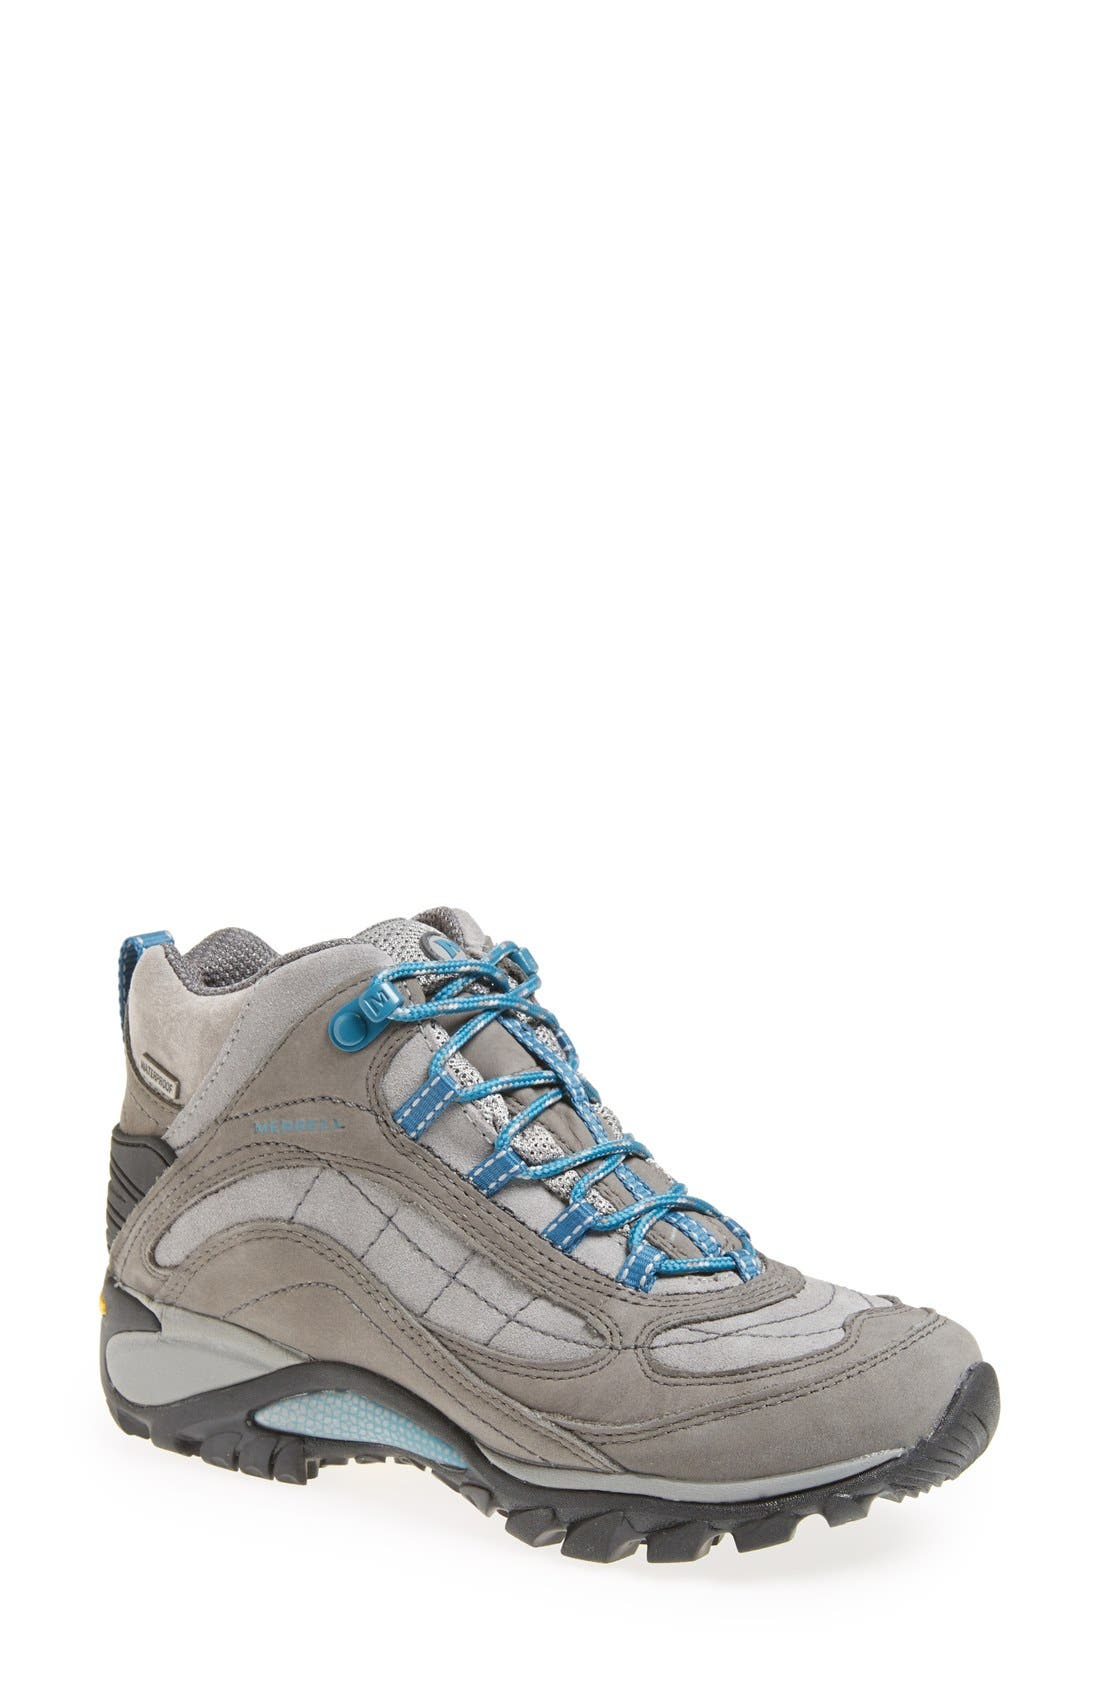 Main Image - Merrell 'Siren' Waterproof Leather Hiking Boot (Women)